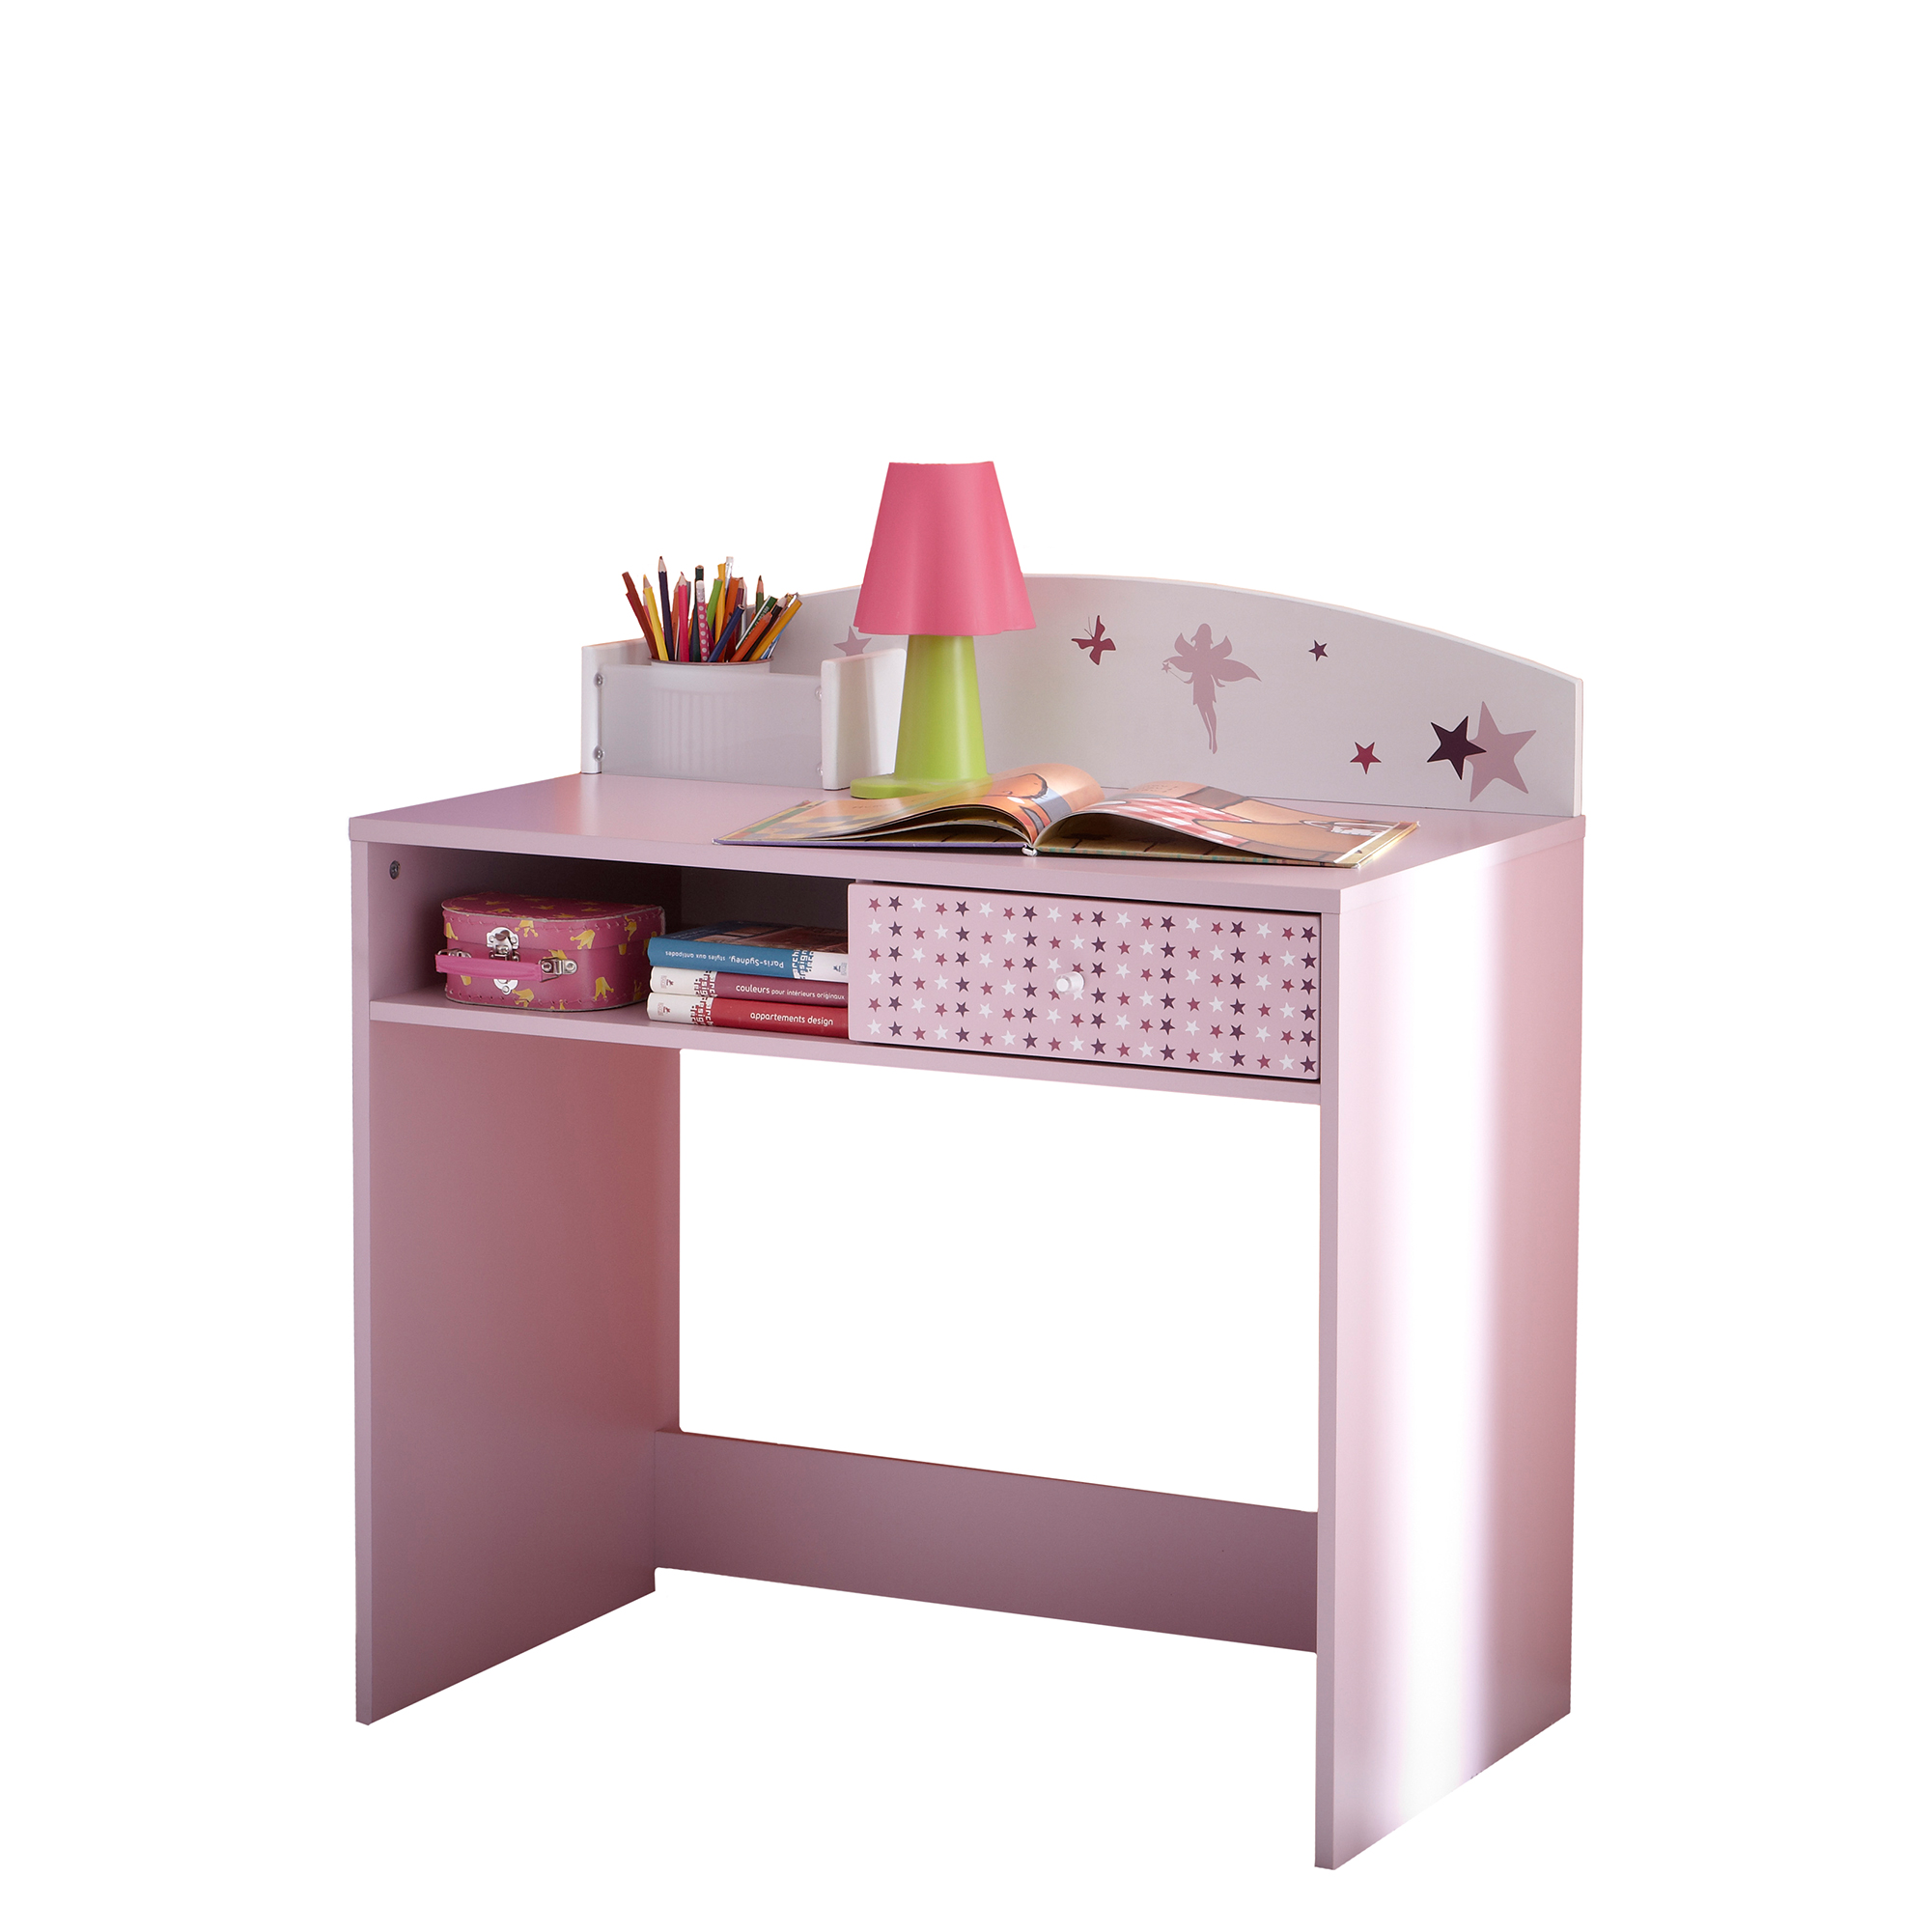 schreibtisch prinzessin kinderschreibtisch tisch m dchen kinderzimmertisch rosa ebay. Black Bedroom Furniture Sets. Home Design Ideas